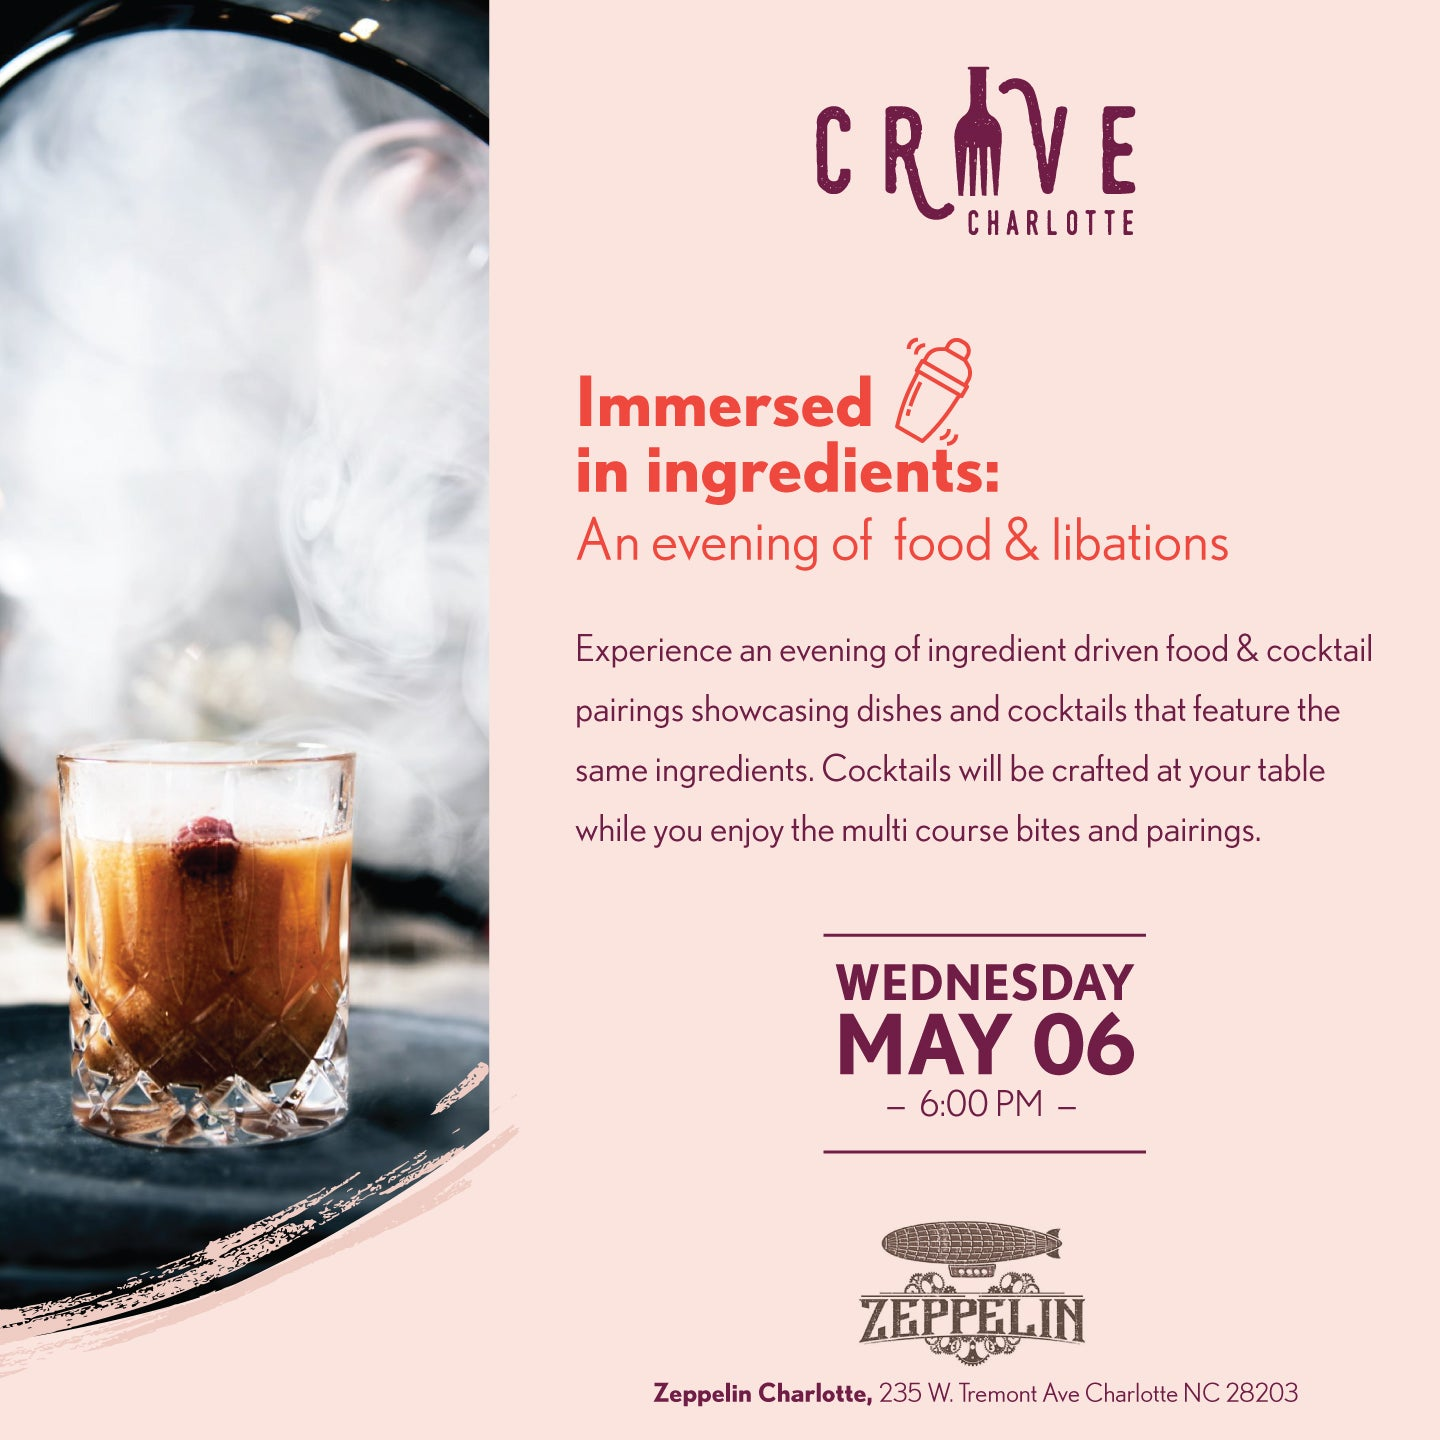 Immersed in Ingredients: An evening of food & libations